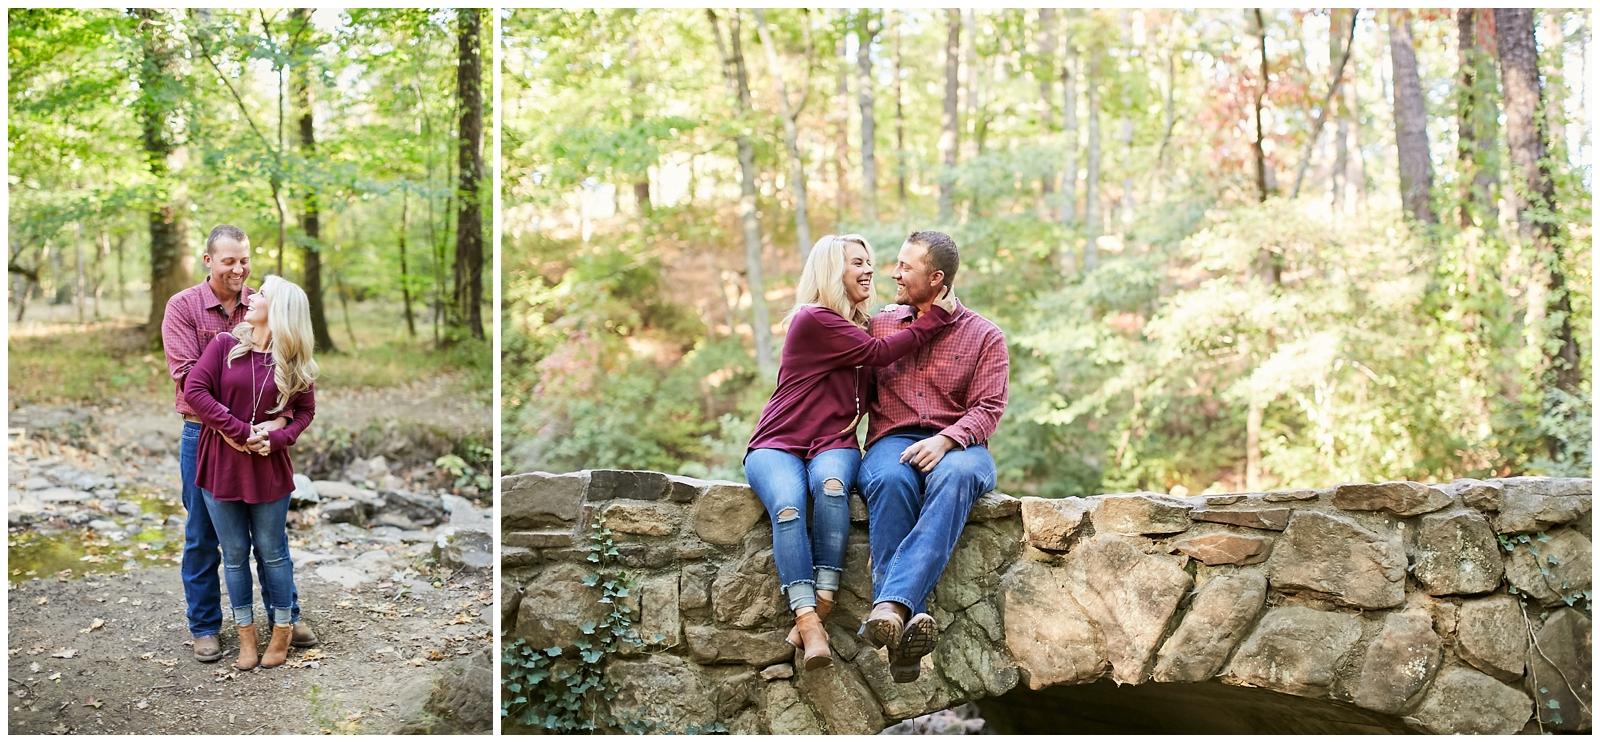 amandawes_berry-college-engagement_0001